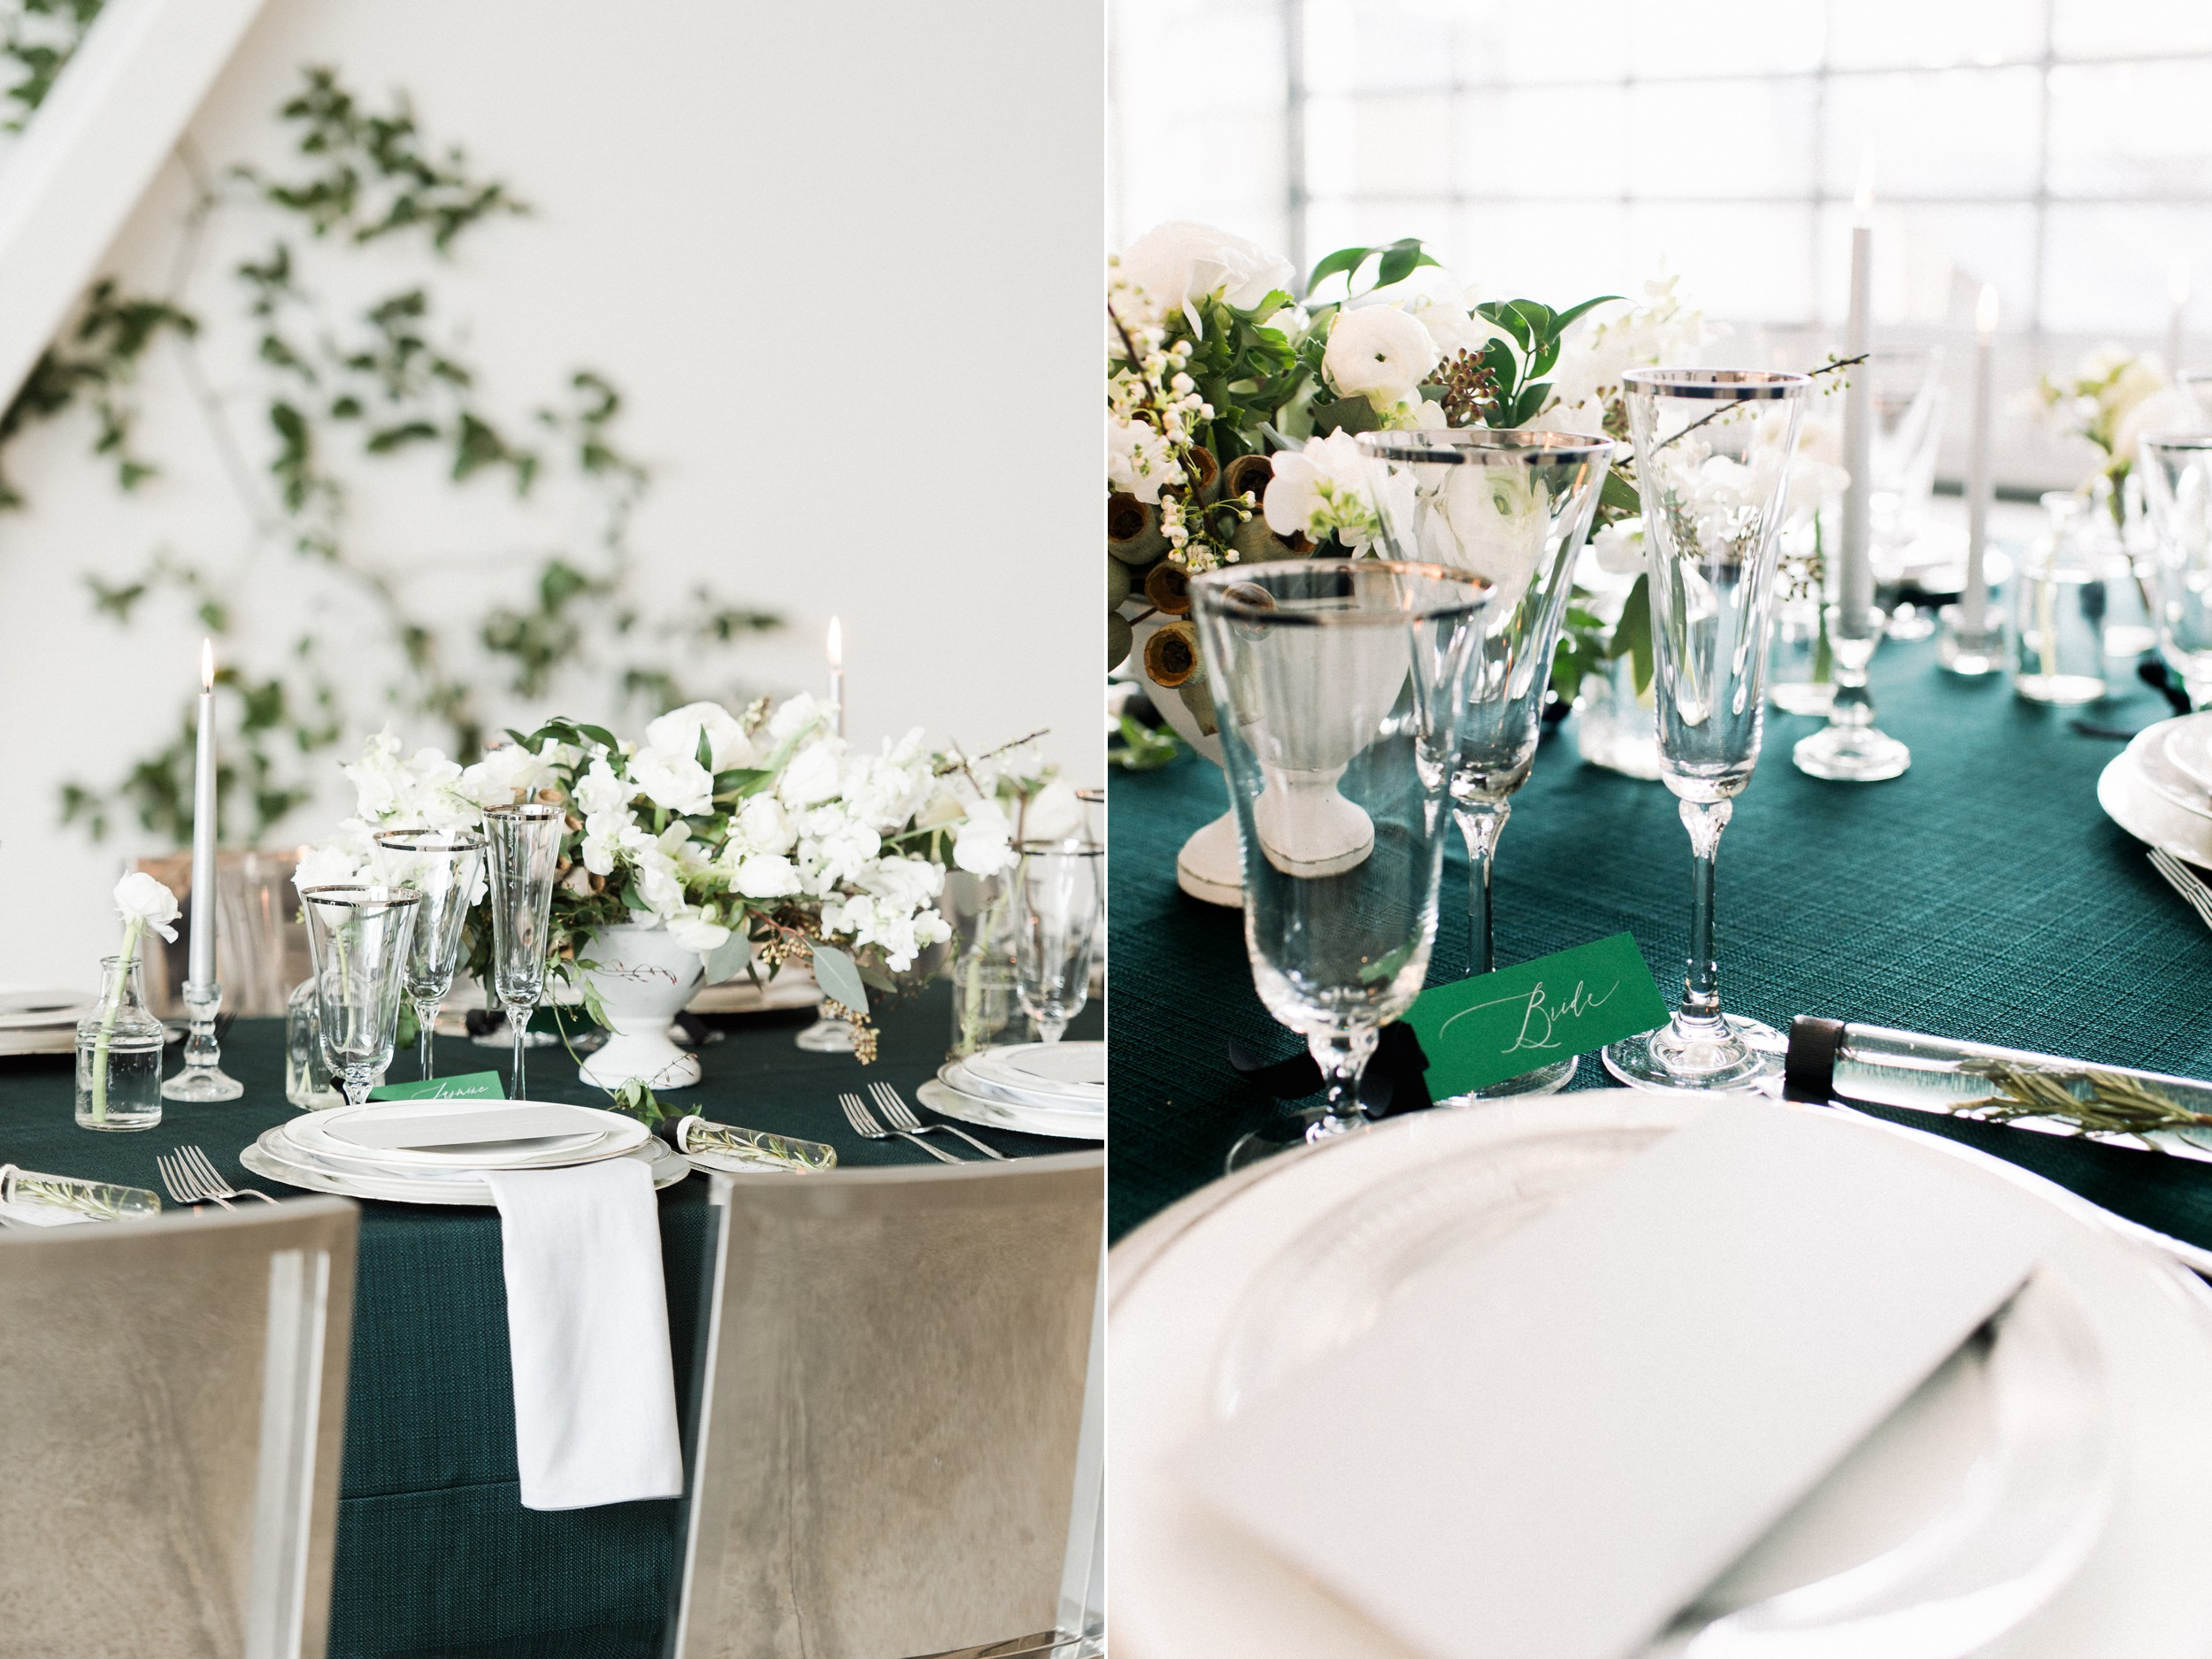 Artists for humanity epicenter wedding green botanical wedding inspiration ivy feature wall modern glamour candles white floral tablescape with velvet textures